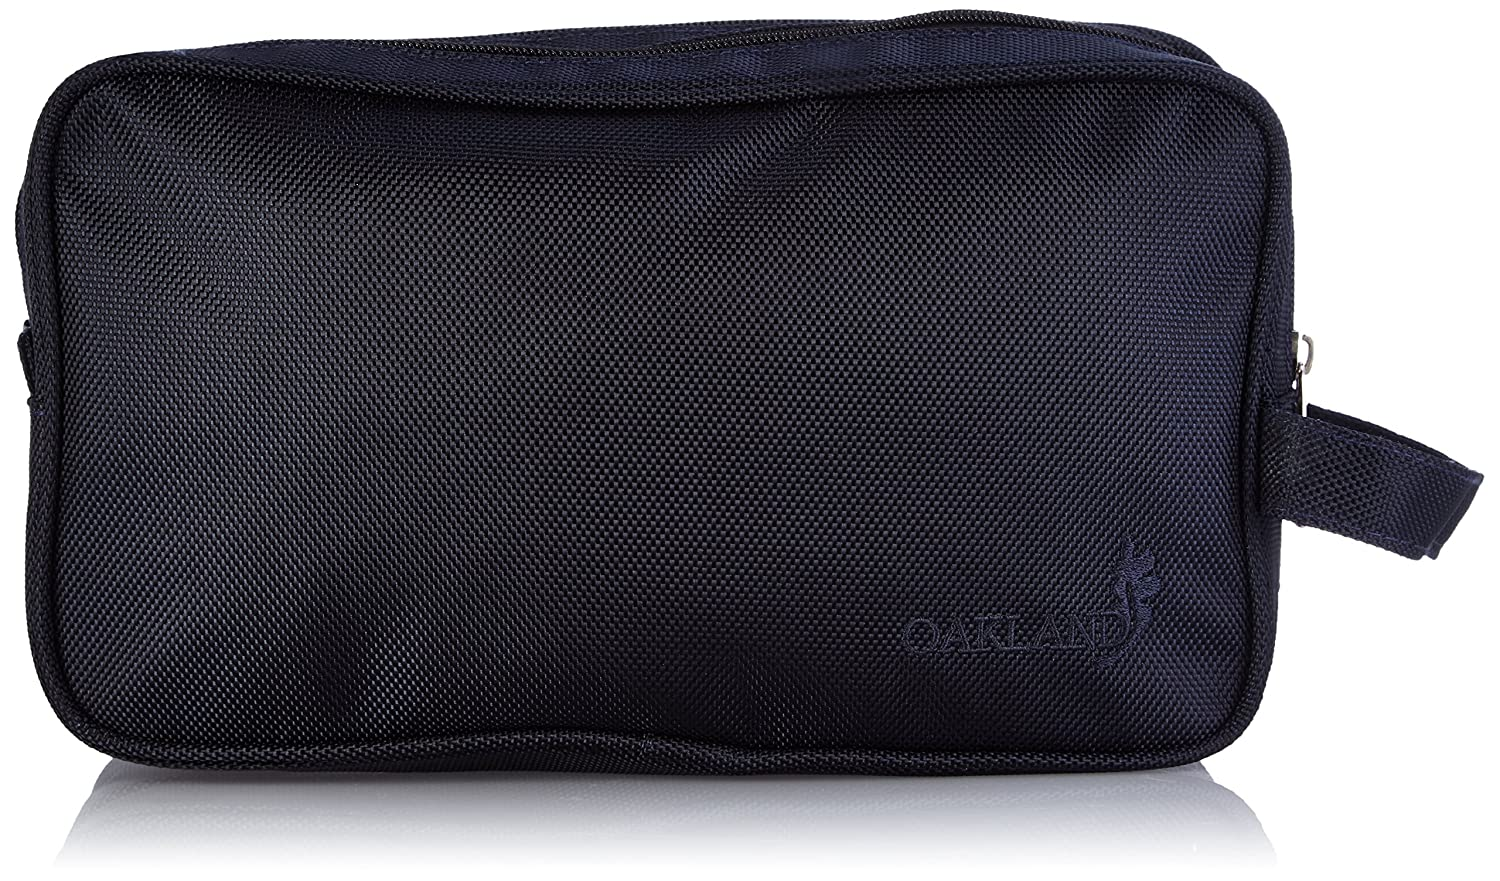 aecd2ca5d0 Oakland Men s Large nylon Washbag Travel Wash Bag with 2 compartments and  handle (Black)  Amazon.co.uk  Luggage